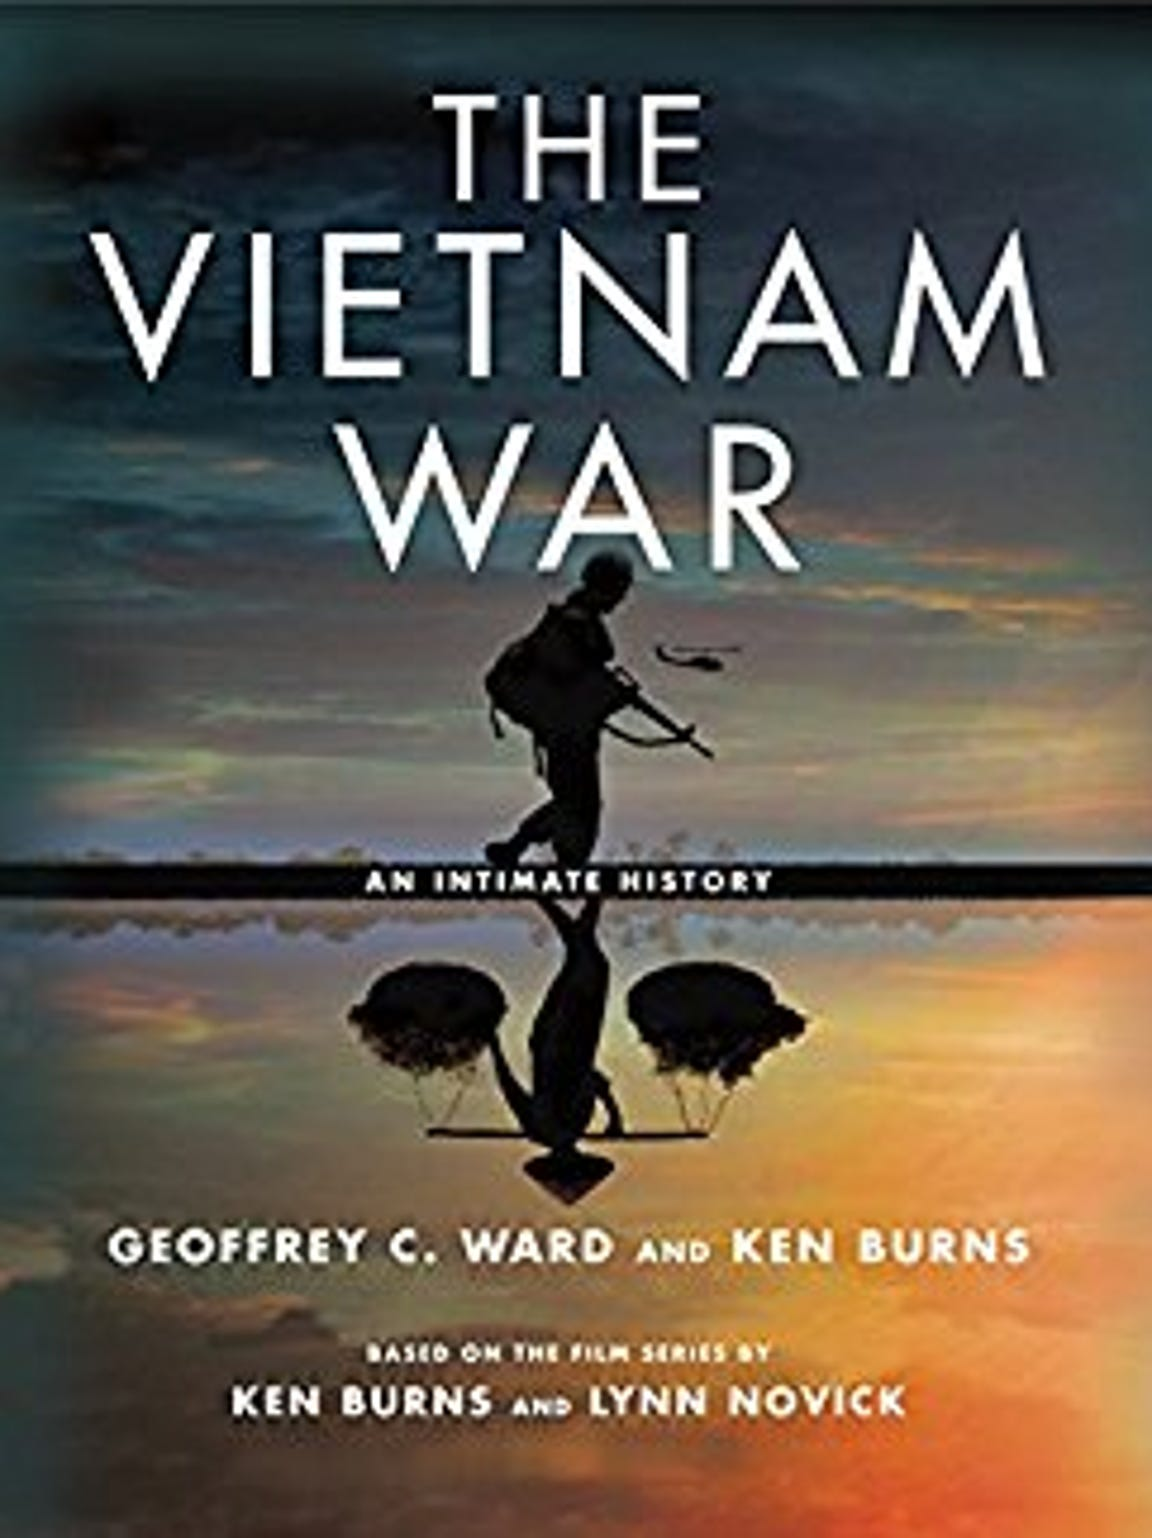 The Vietnam War cover.